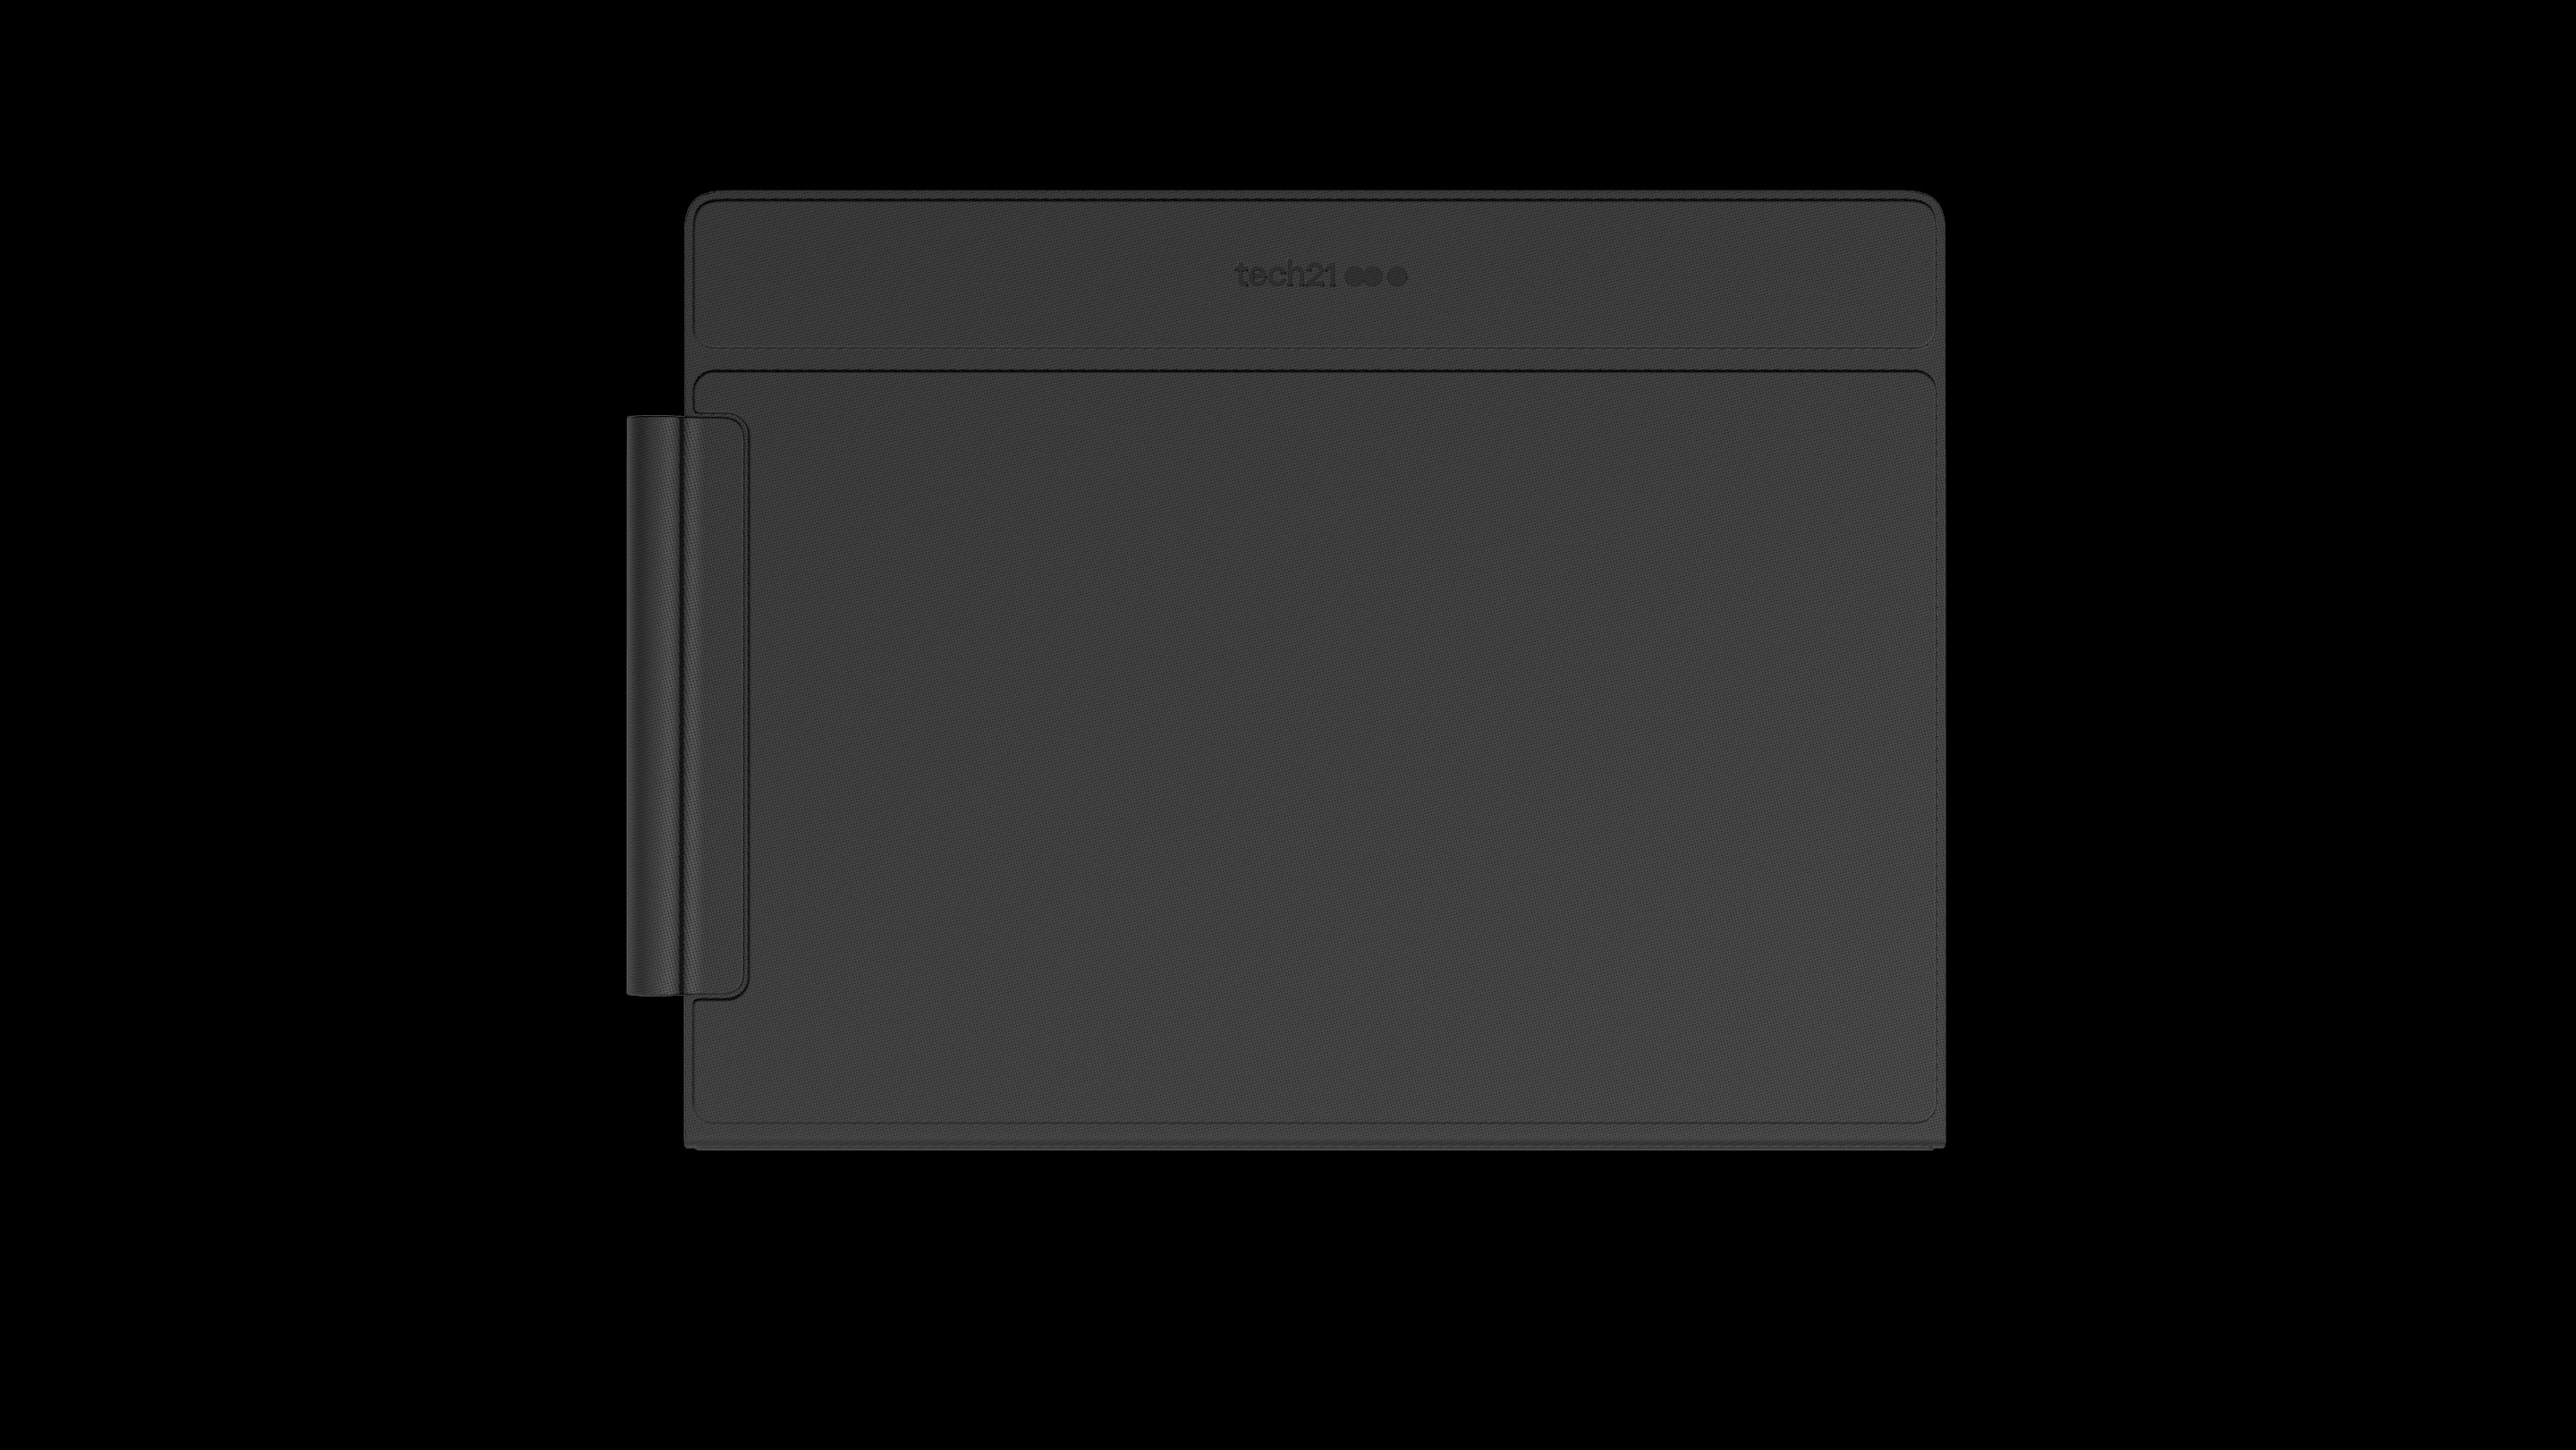 half off 2868d 9ada5 Tech21 Evo Adapt case launches for Google Pixelbook, now available ...